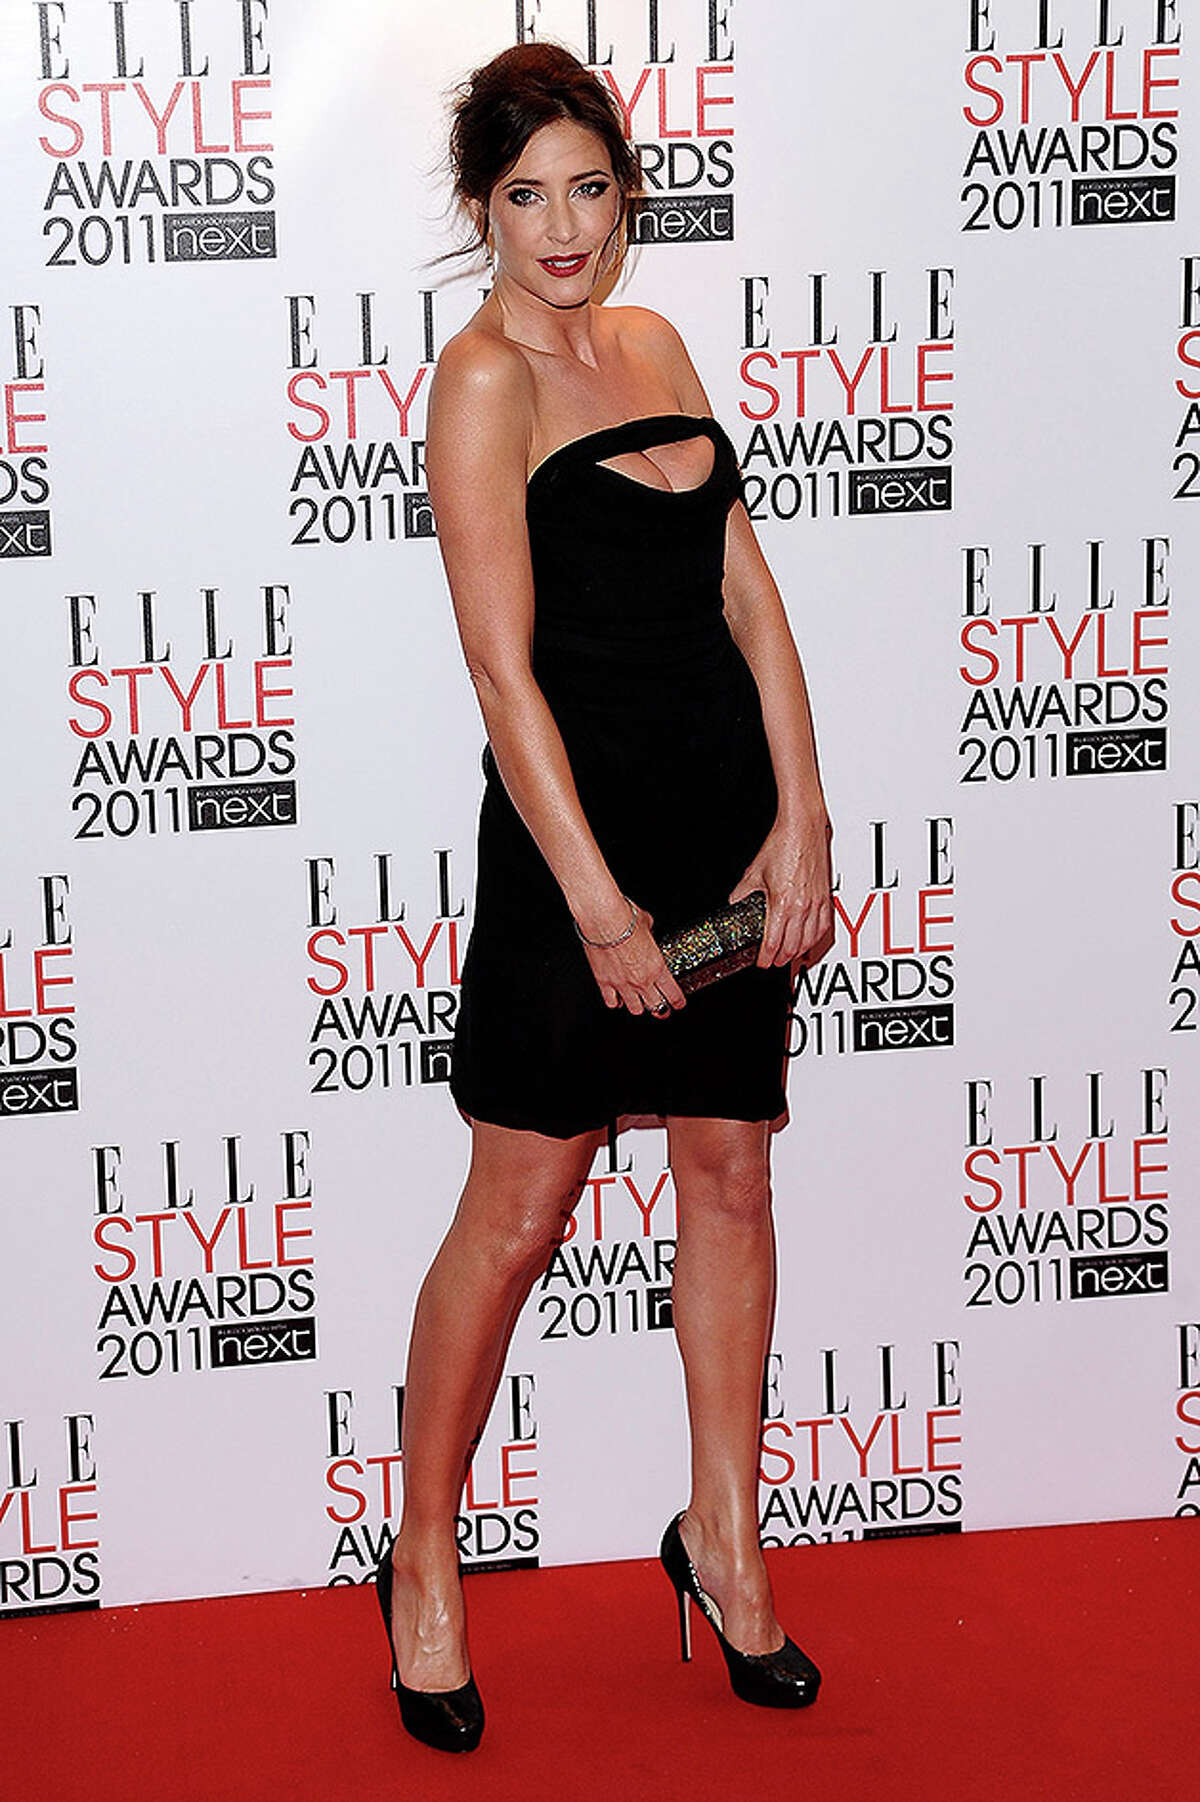 LONDON, ENGLAND - FEBRUARY 14: Lisa Snowdon attends the 2011 ELLE Style Awards at the Grand Connaught Rooms on February 14, 2011 in London, England. (Photo by Ian Gavan/Getty Images) *** Local Caption *** Lisa Snowdon